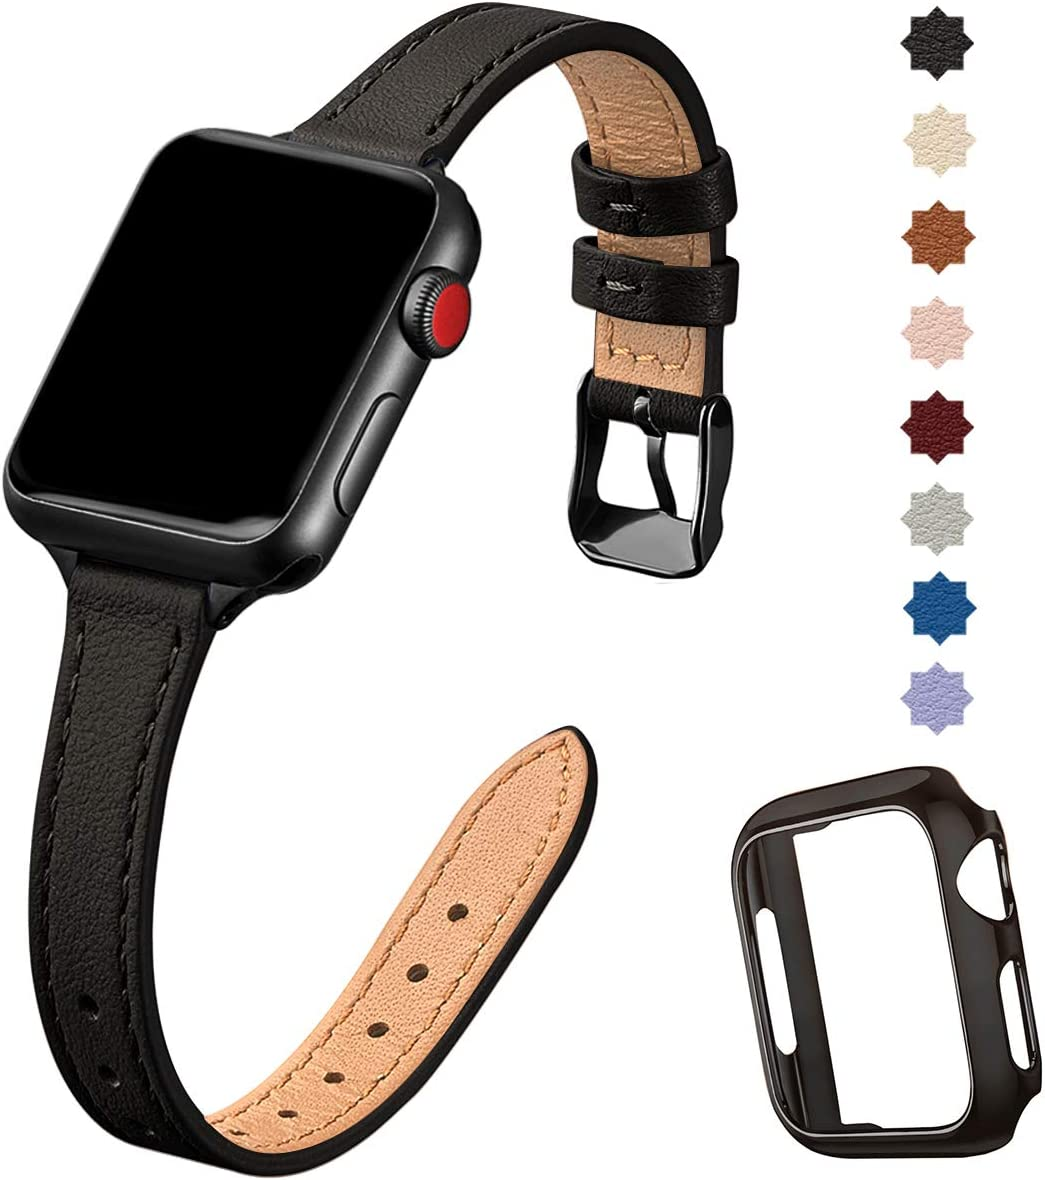 STIROLL Slim Leather Bands Compatible with Apple Watch Band 38mm 40mm 42mm 44mm, Top Grain Leather Smart Watch Thin Wristband Compatible for iWatch Series 5/4/3/2/1 (Black with Black, 38mm/40mm)